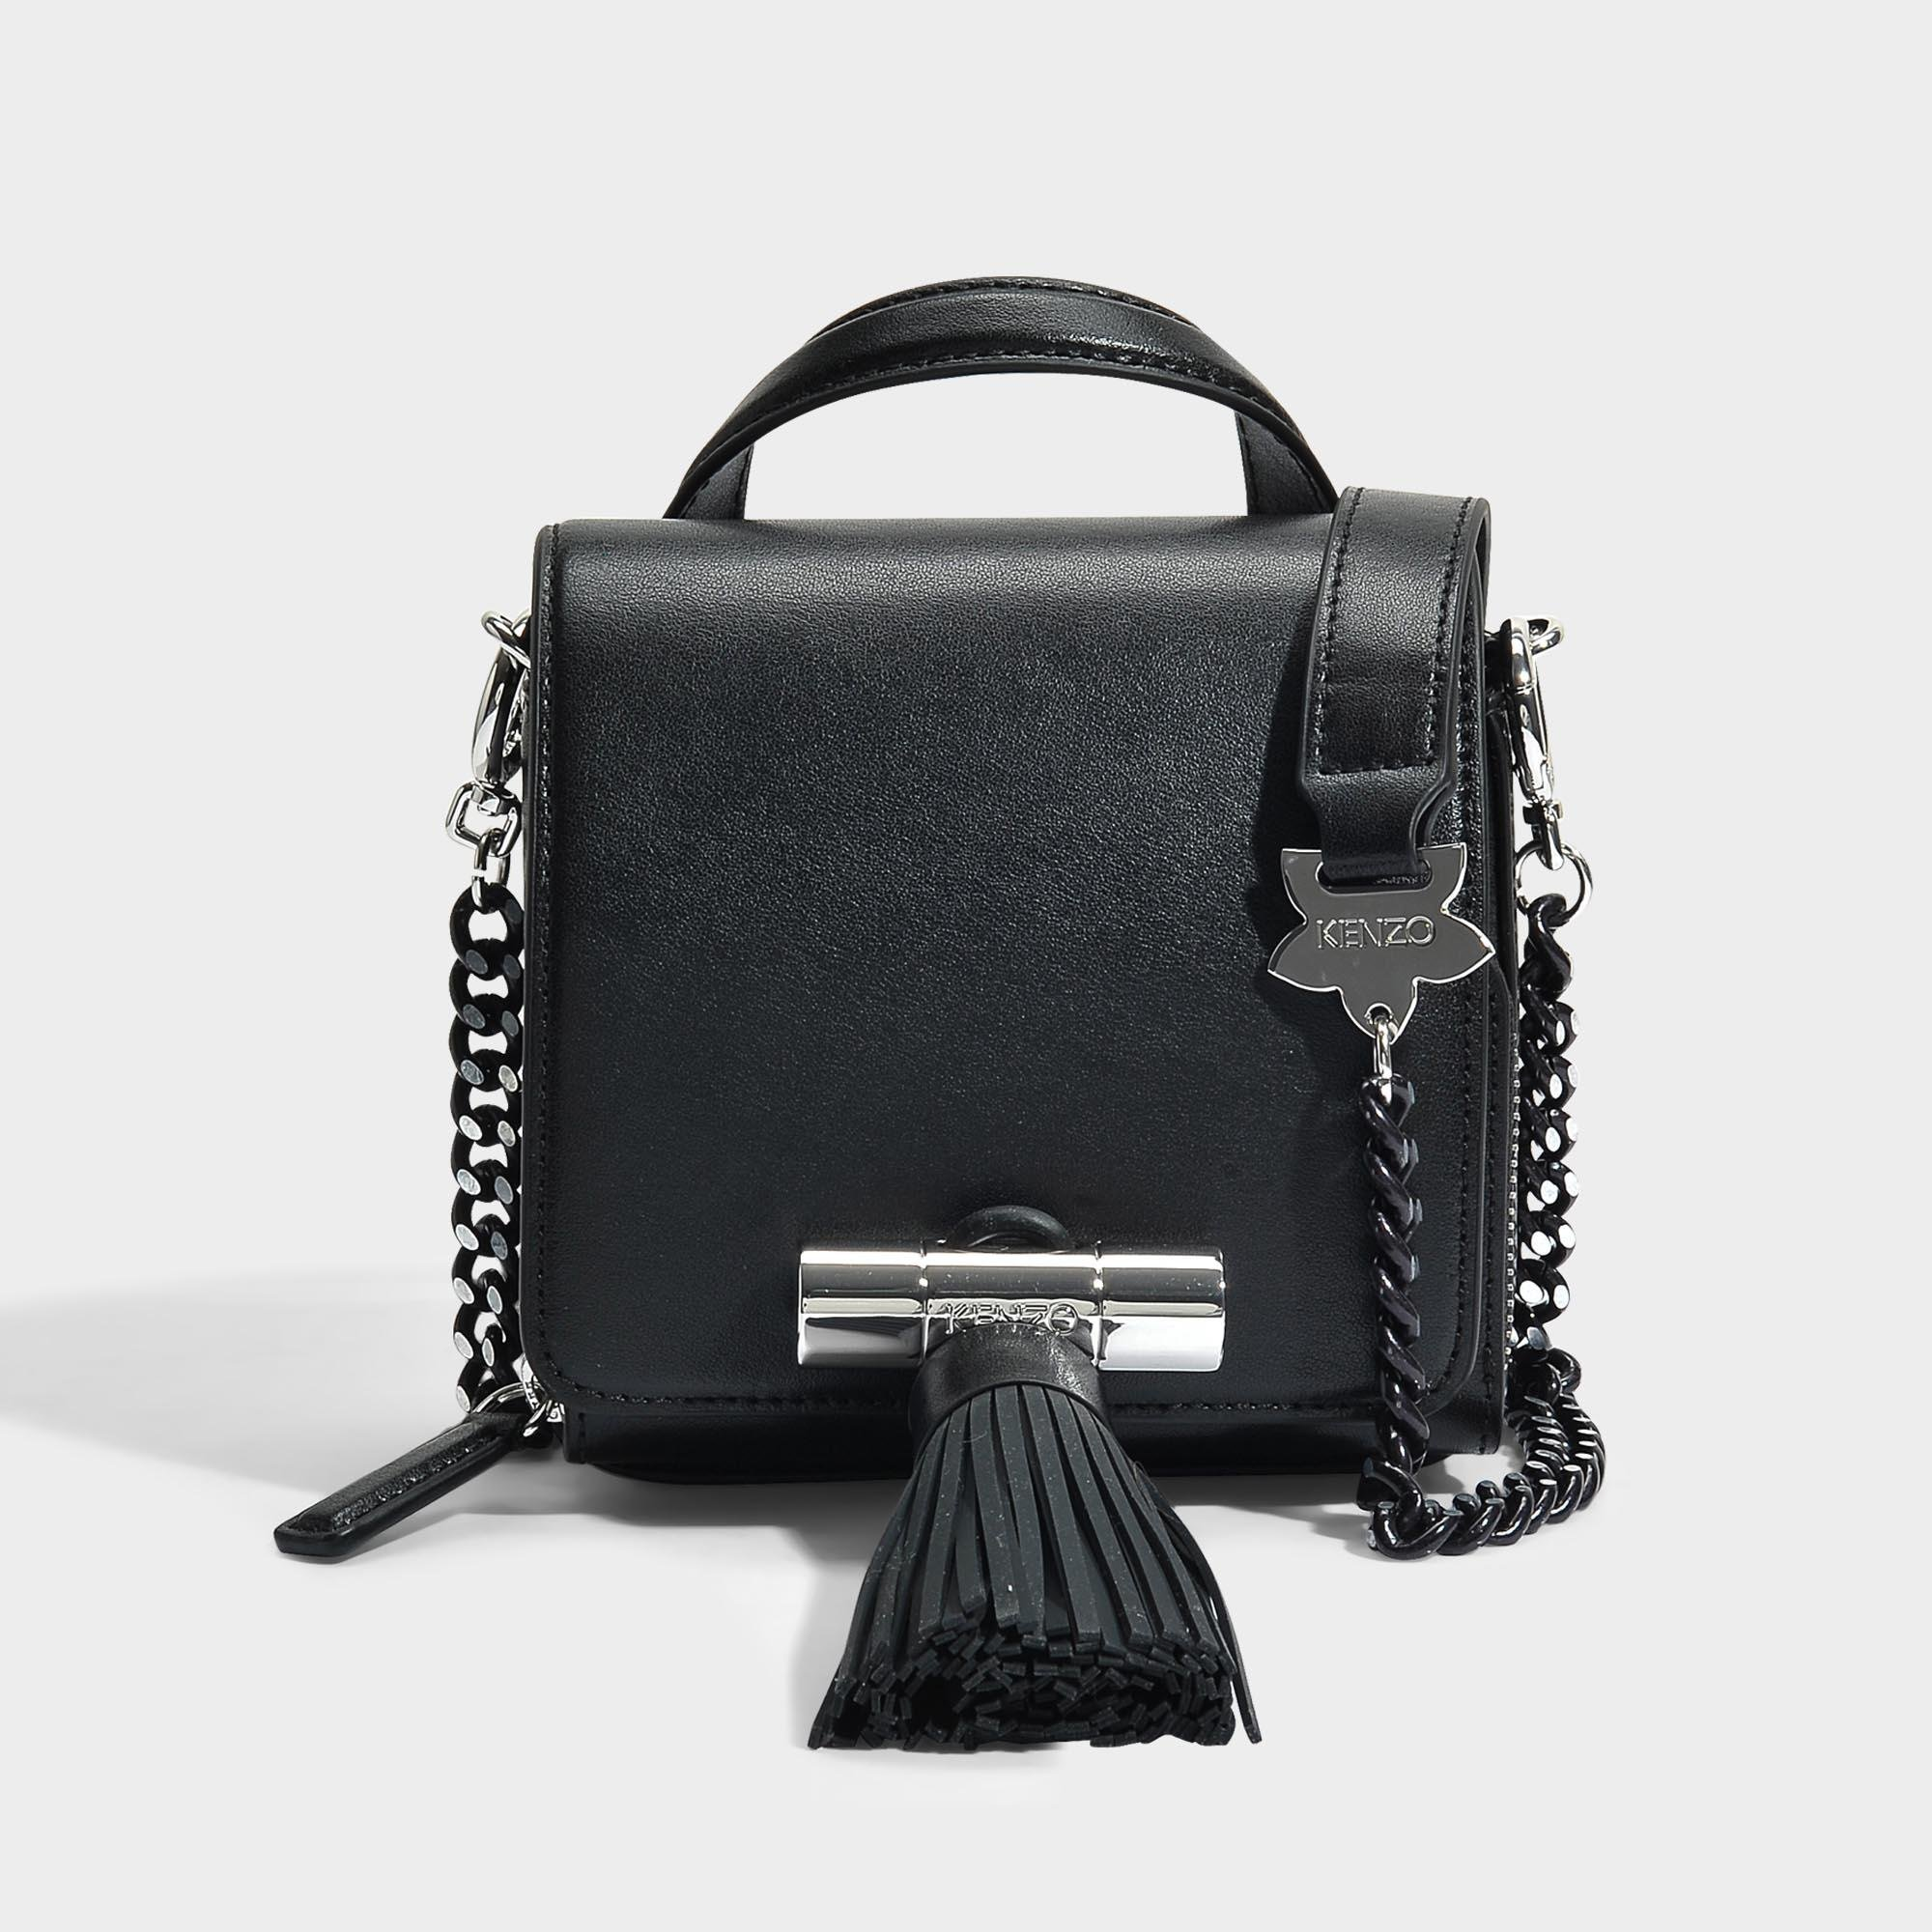 2b71a4a813 KENZO Sailor Chain Mini Top Handle Bag In Black Leather in Black - Lyst